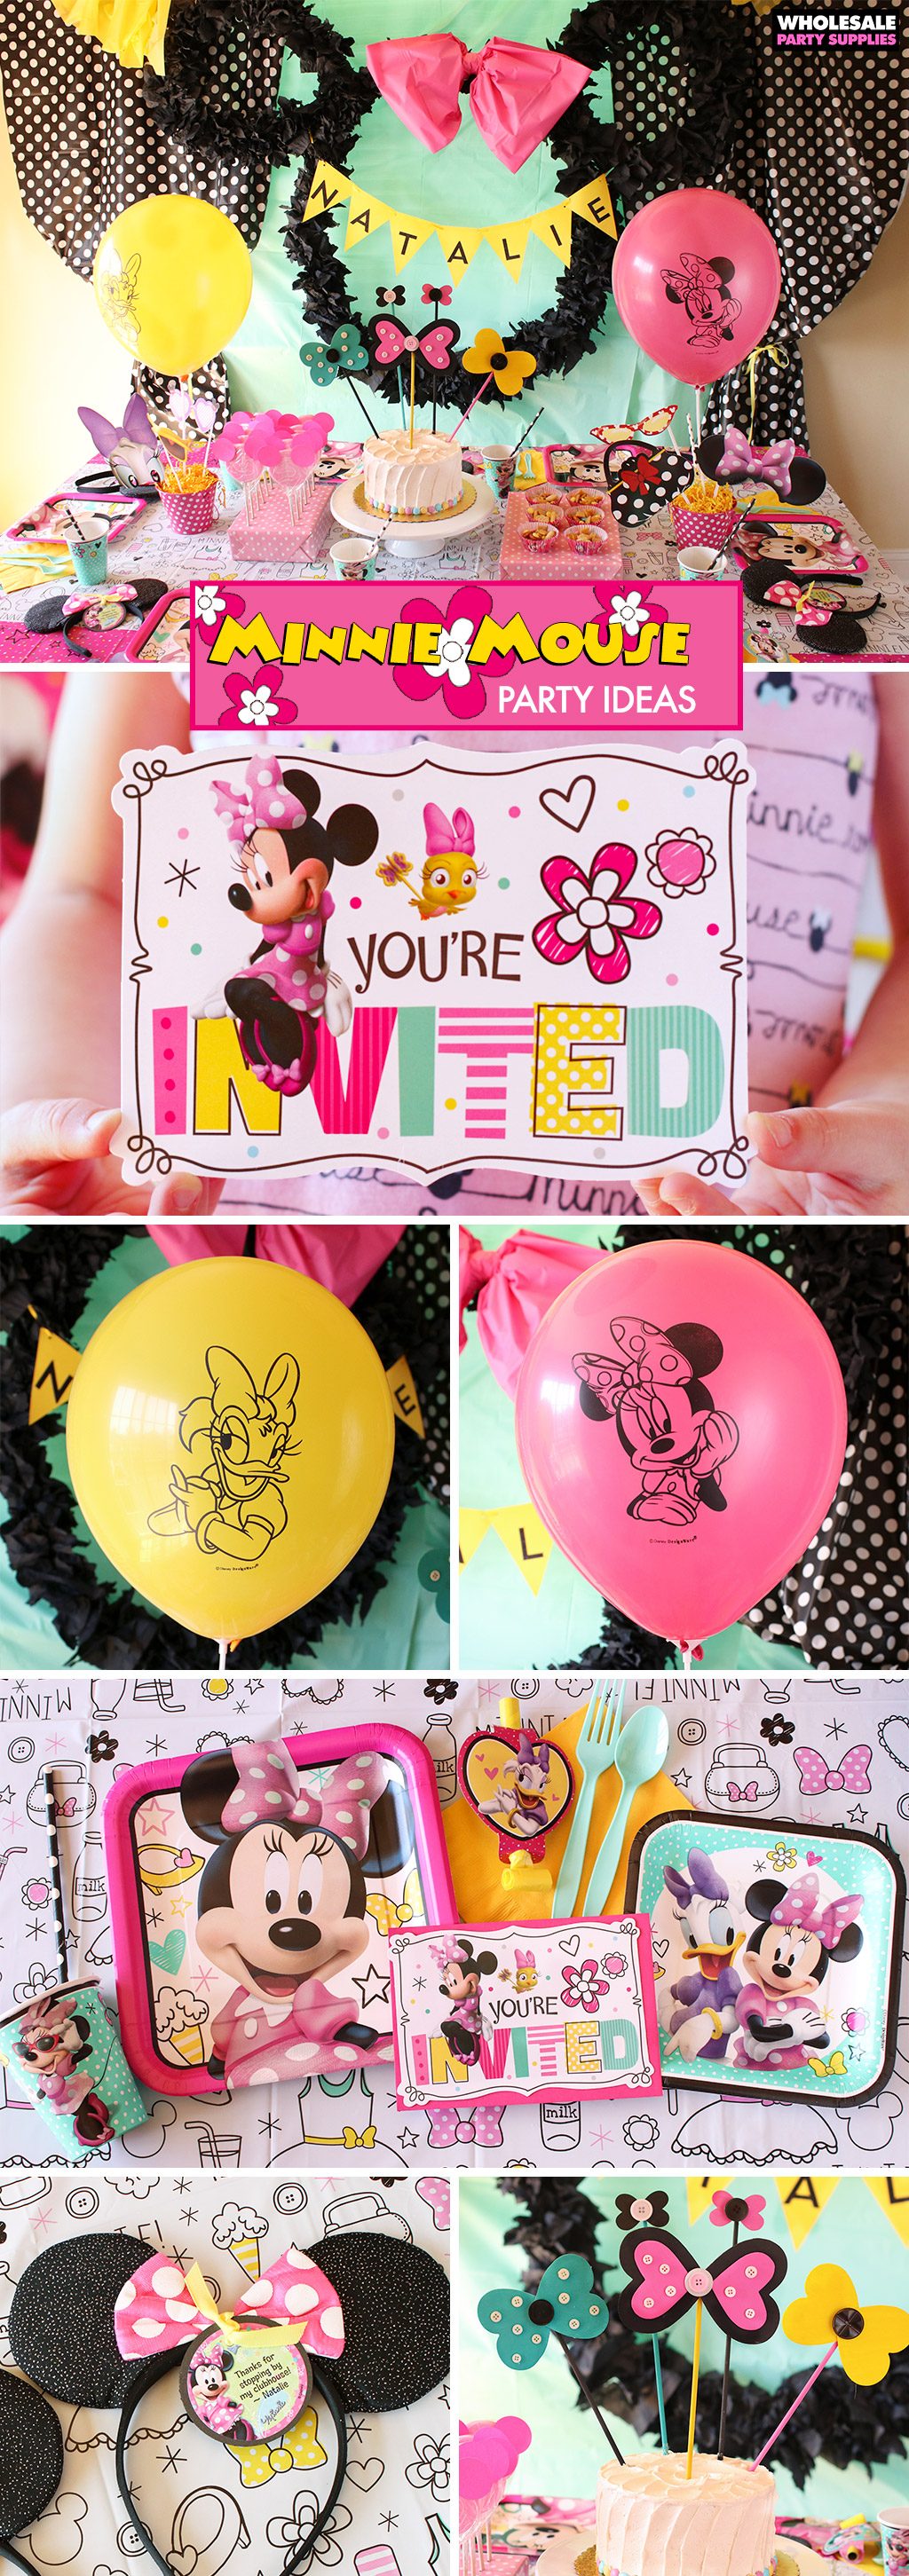 Minnie Mouse Party Ideas Pinterest Guide